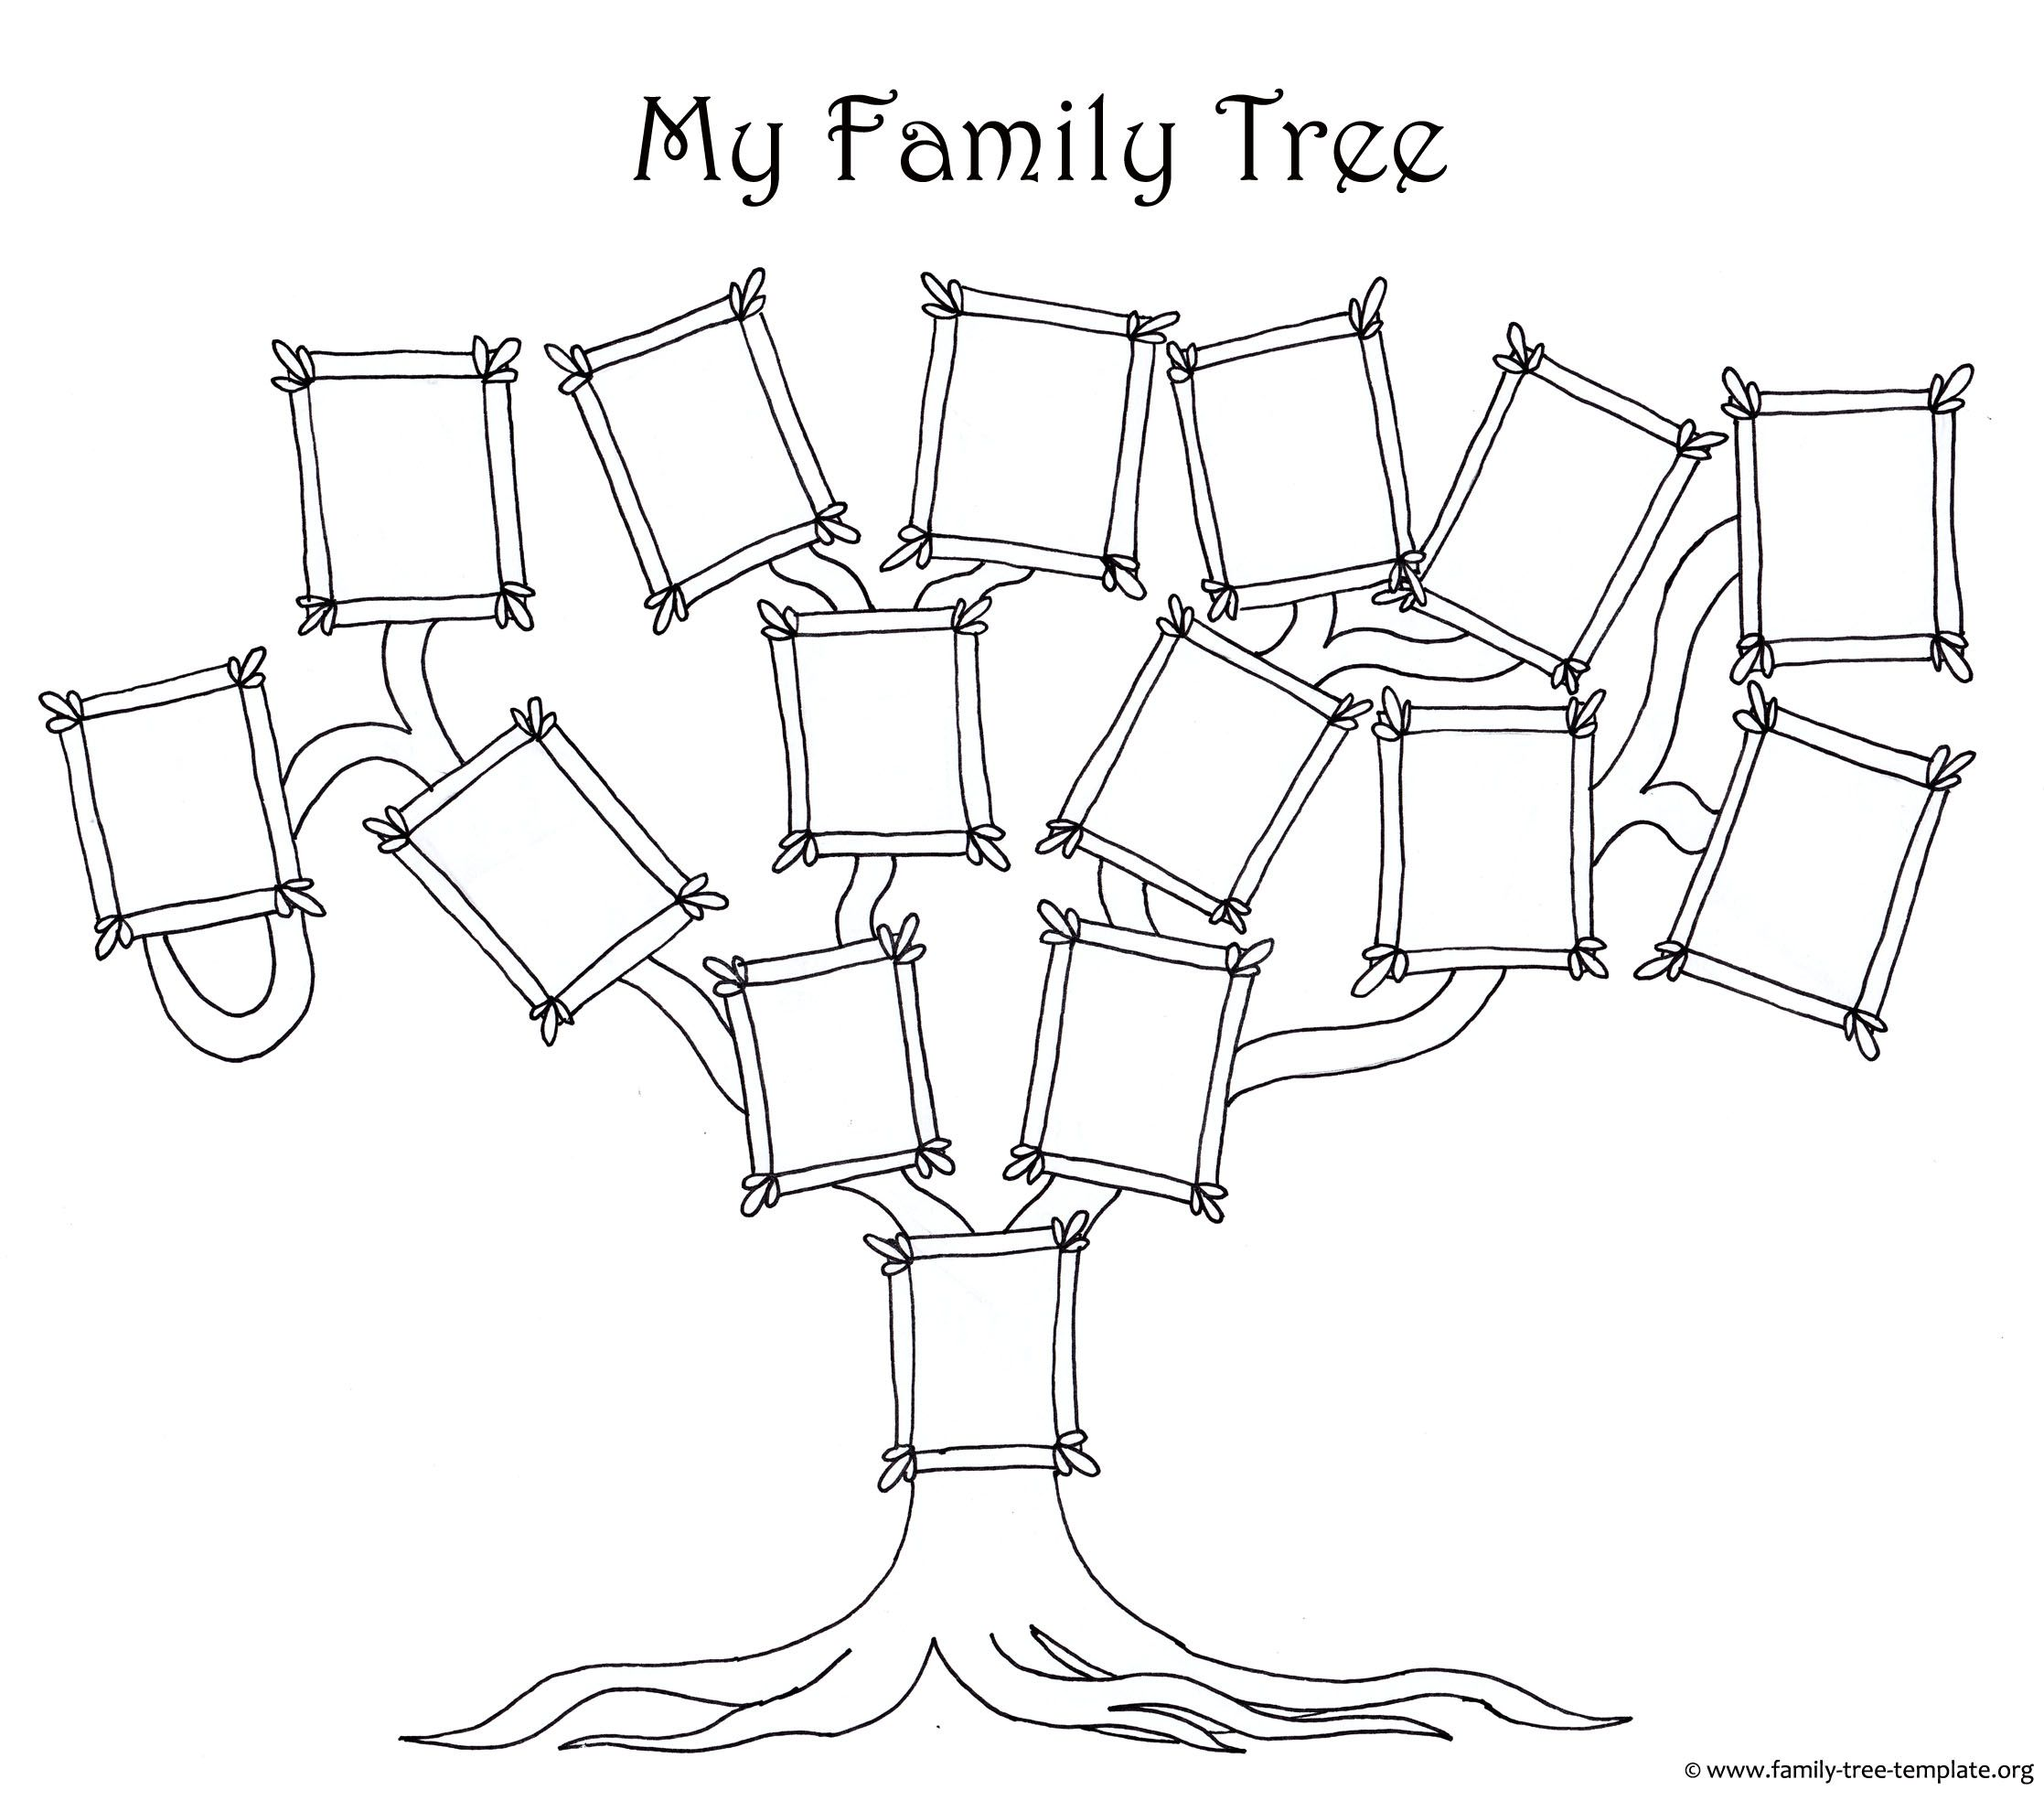 Coloring Page For Kids A Simple Fun Family Tree Chart With